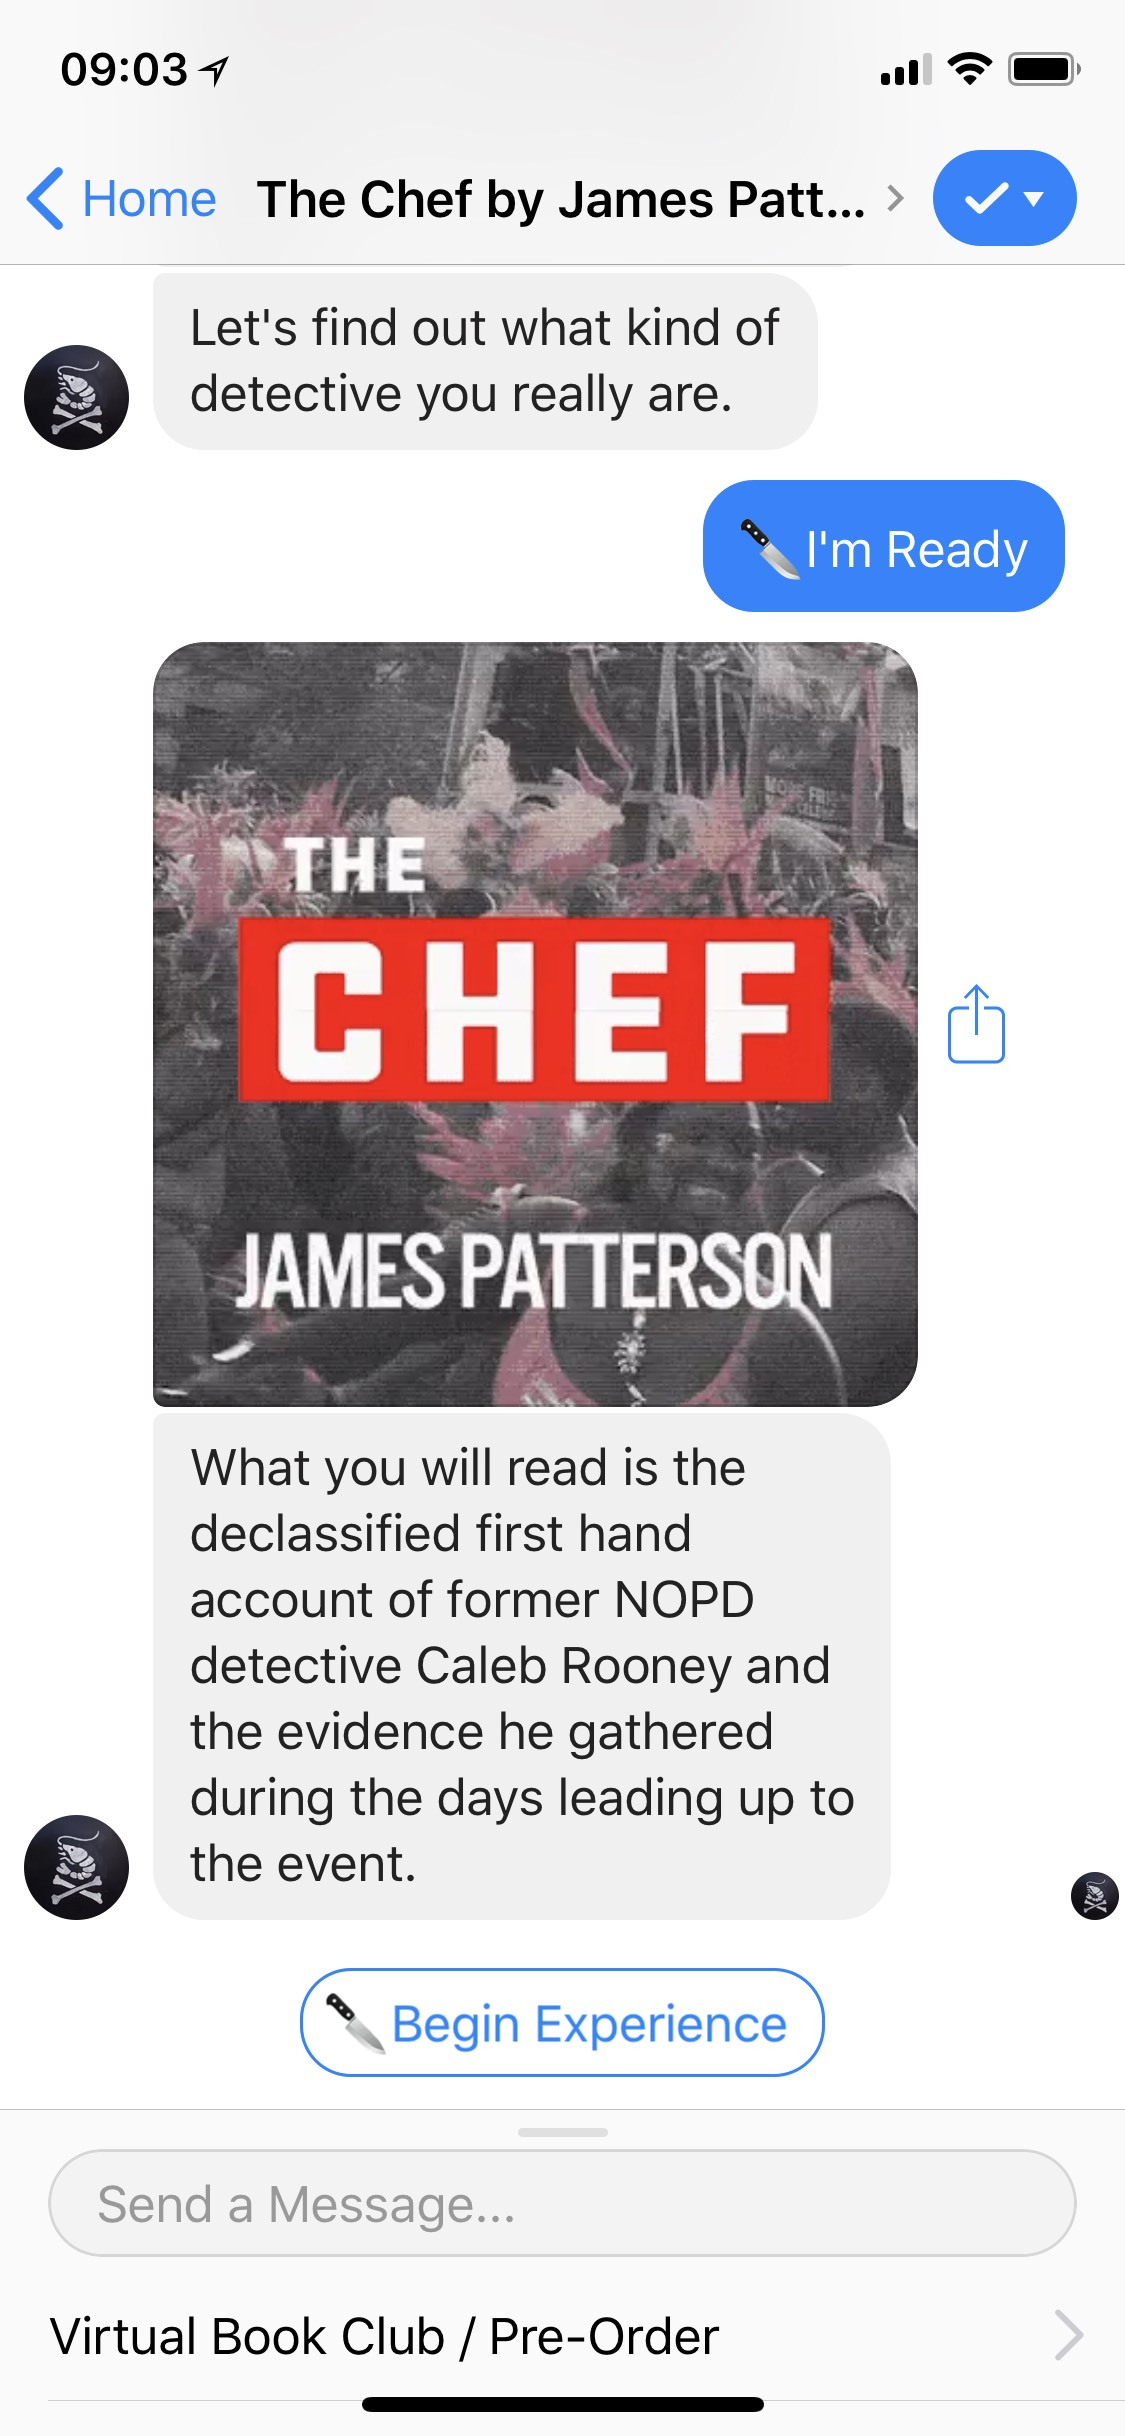 James Patterson released a work of interactive fiction on Facebook Messenger